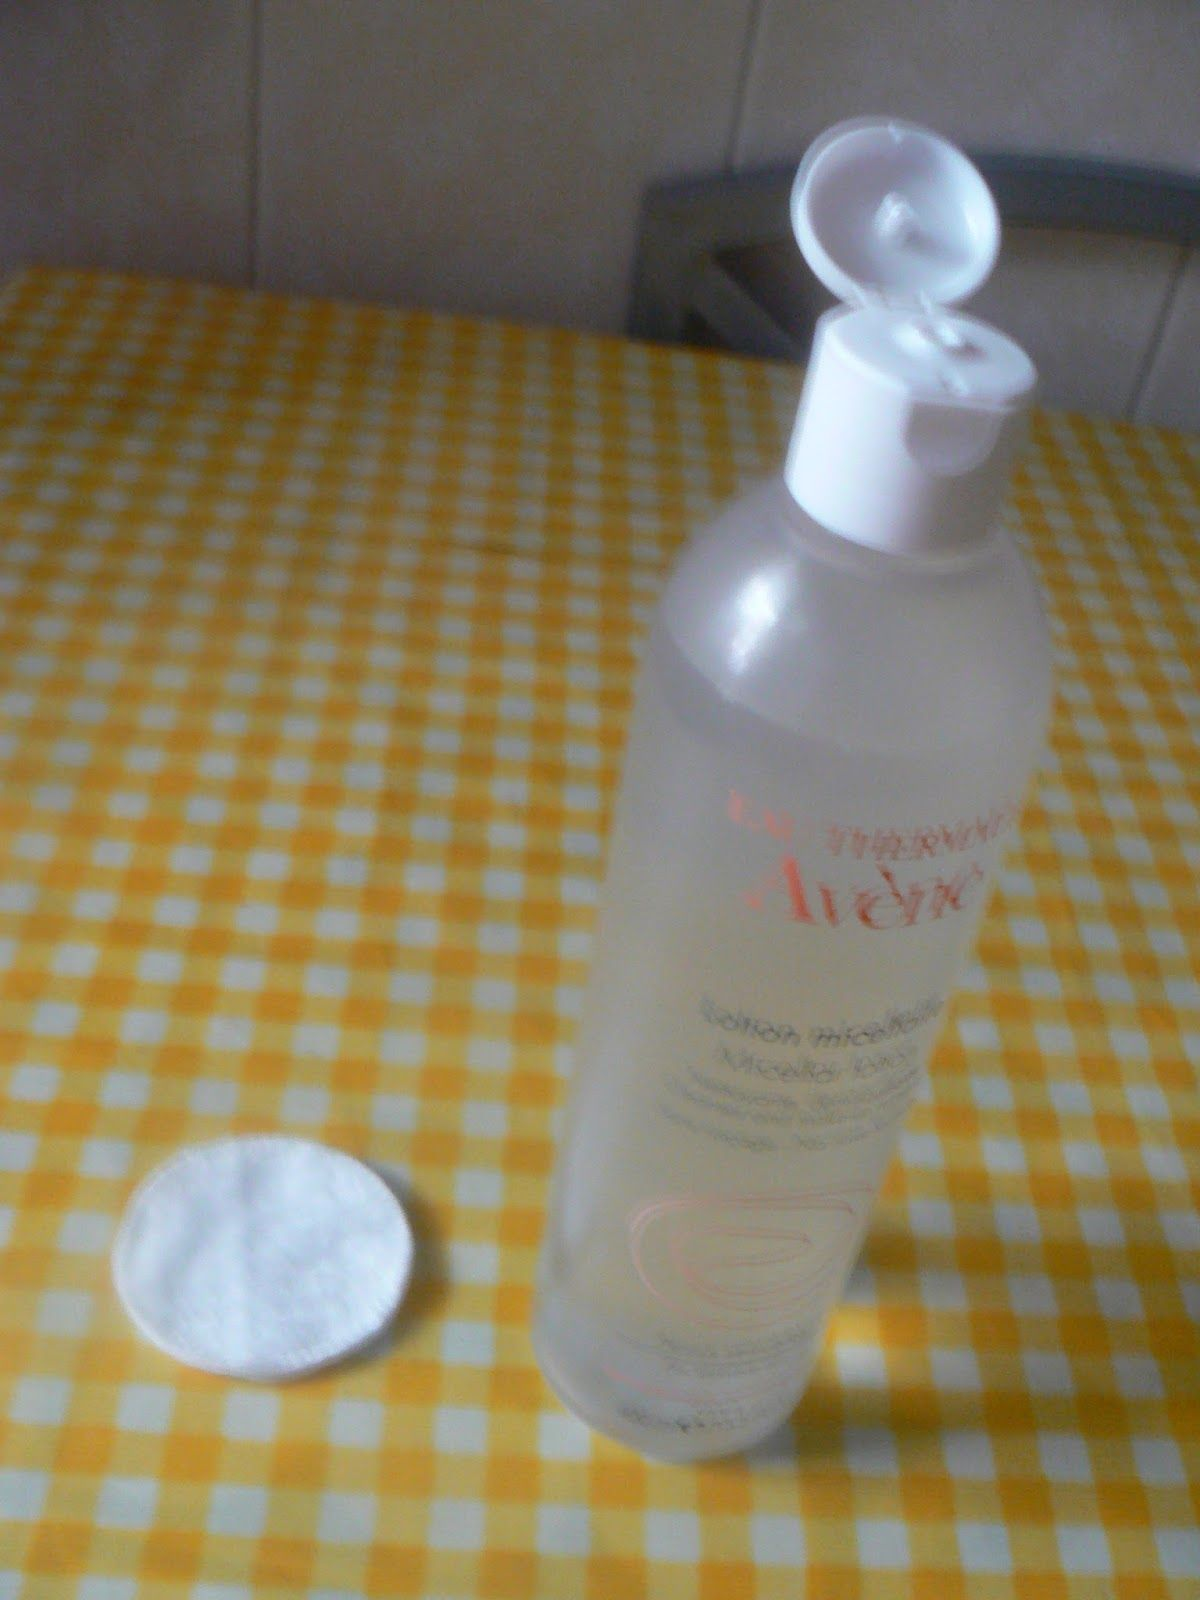 Current makeup remover Avéne's Micellar Water